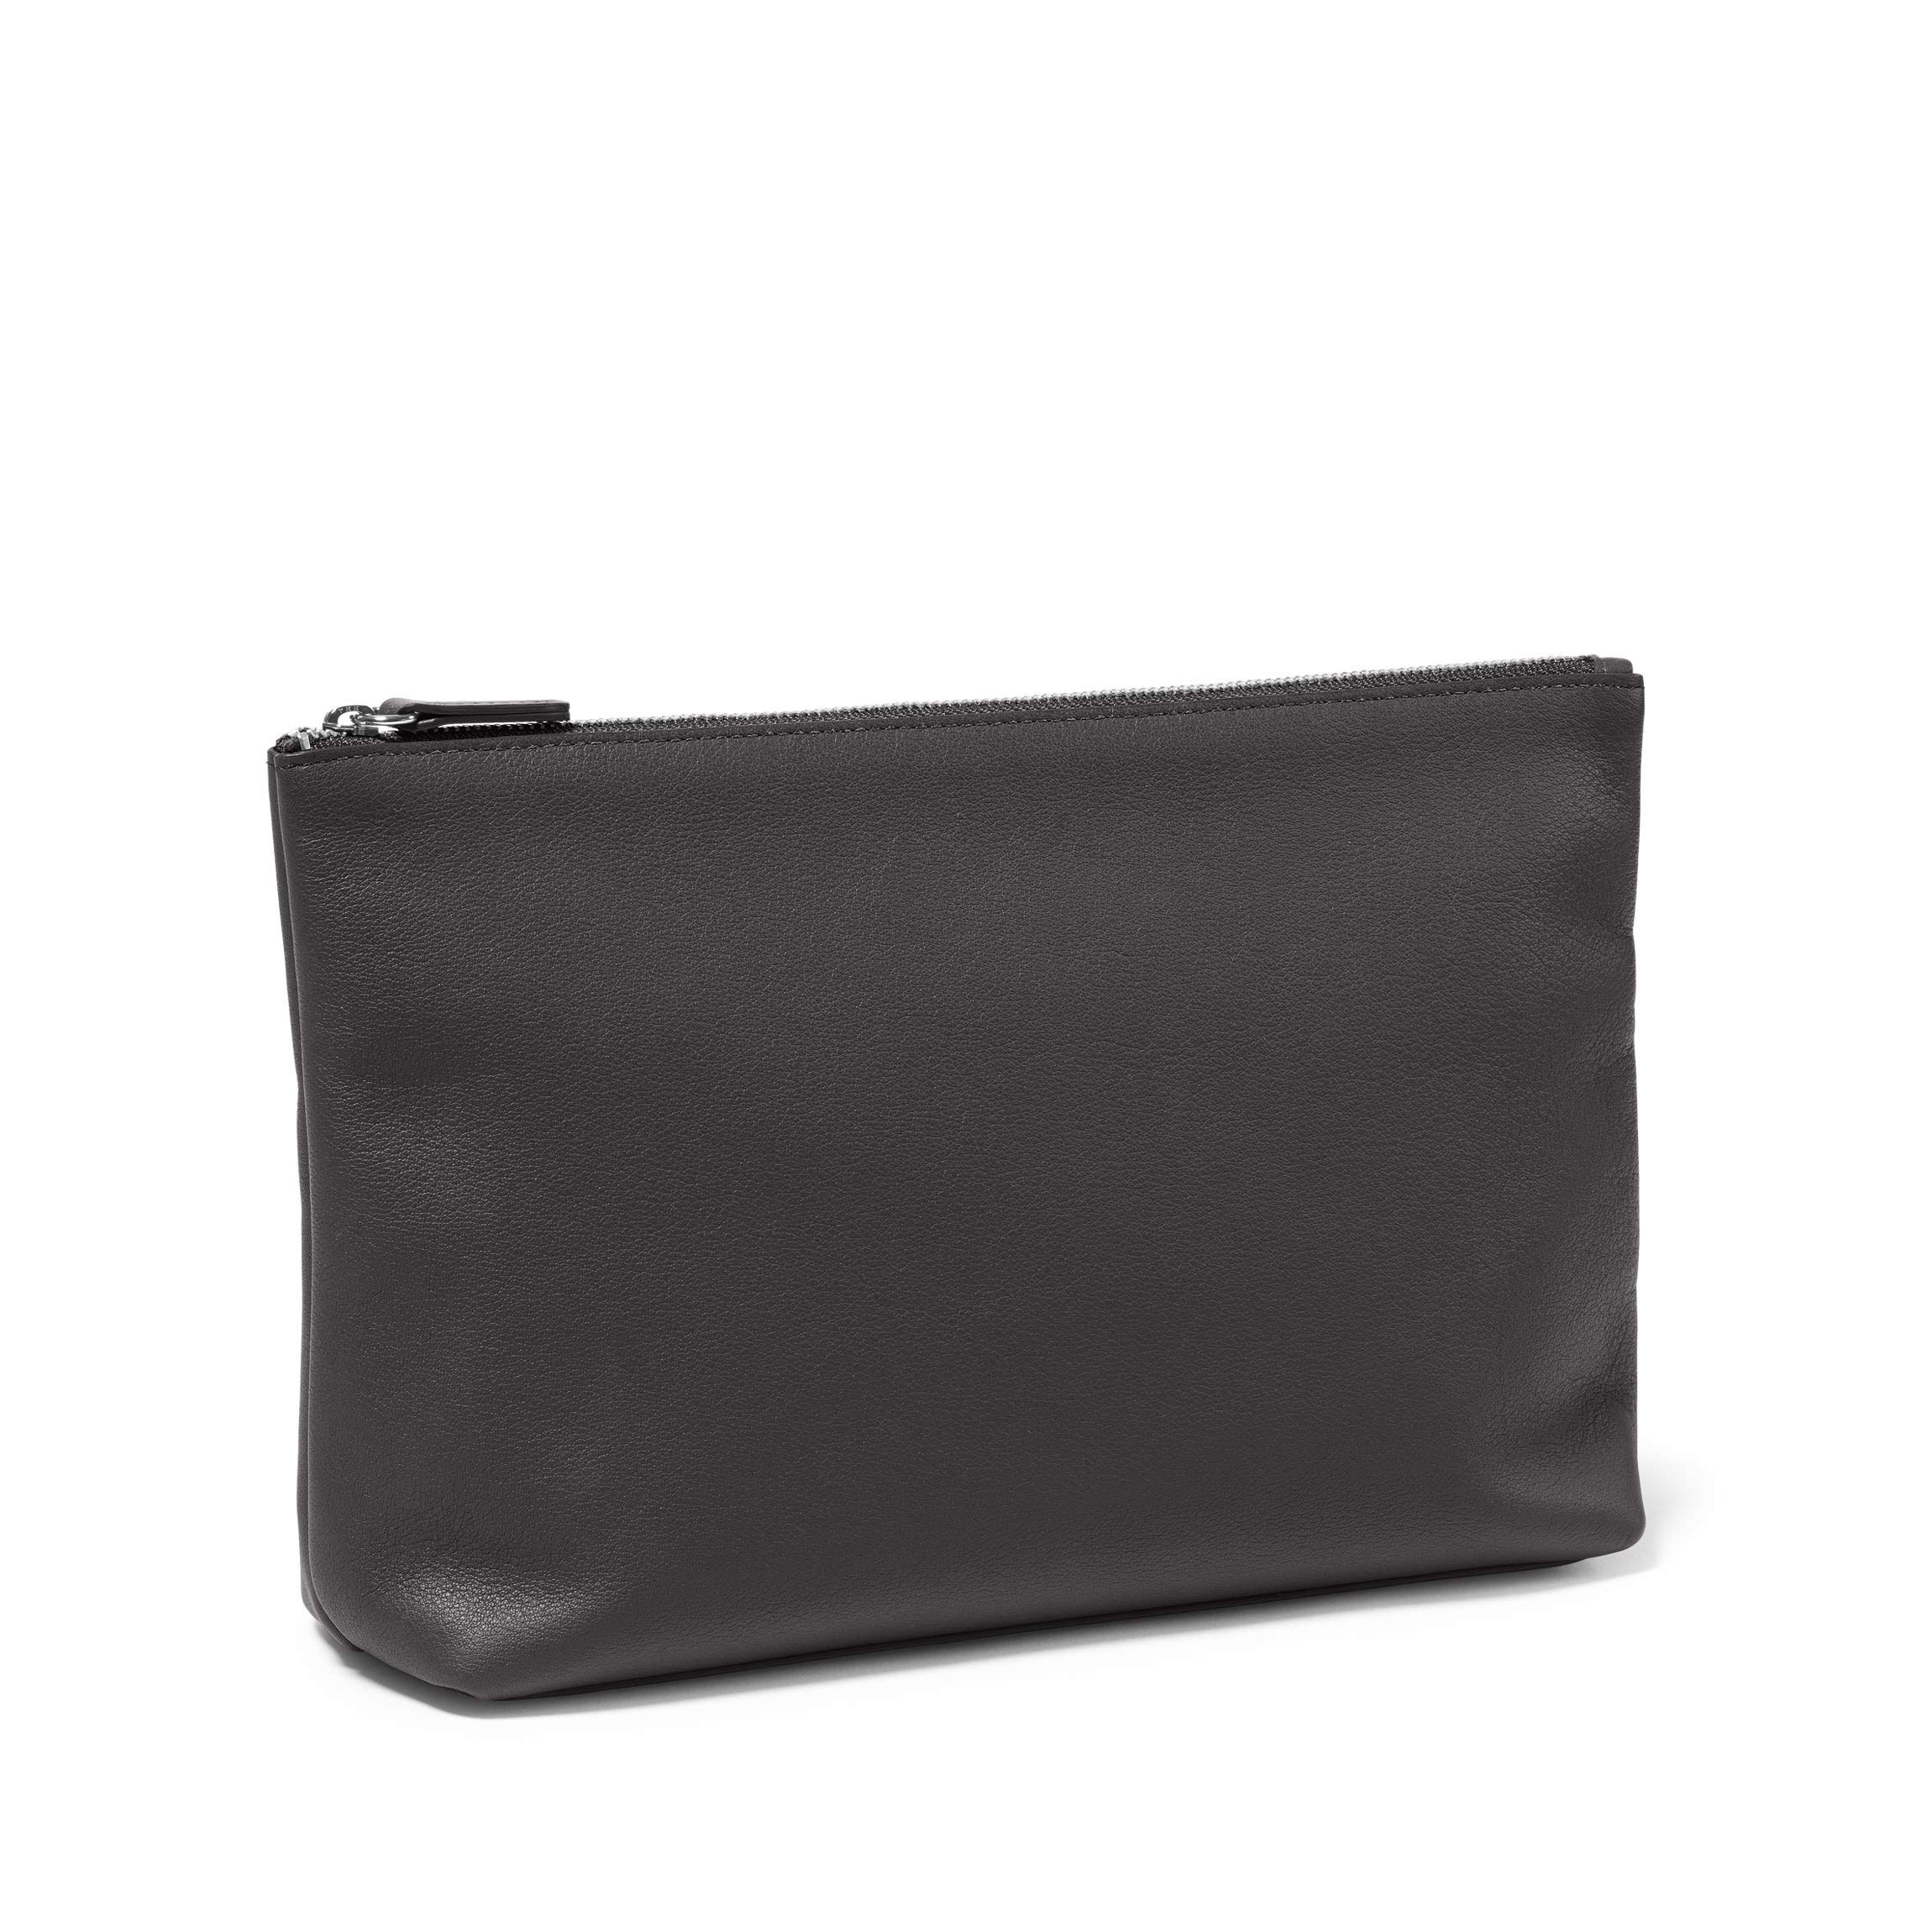 Large Accessories Pouch - Full Grain Leather Leather - Black Onyx (black)